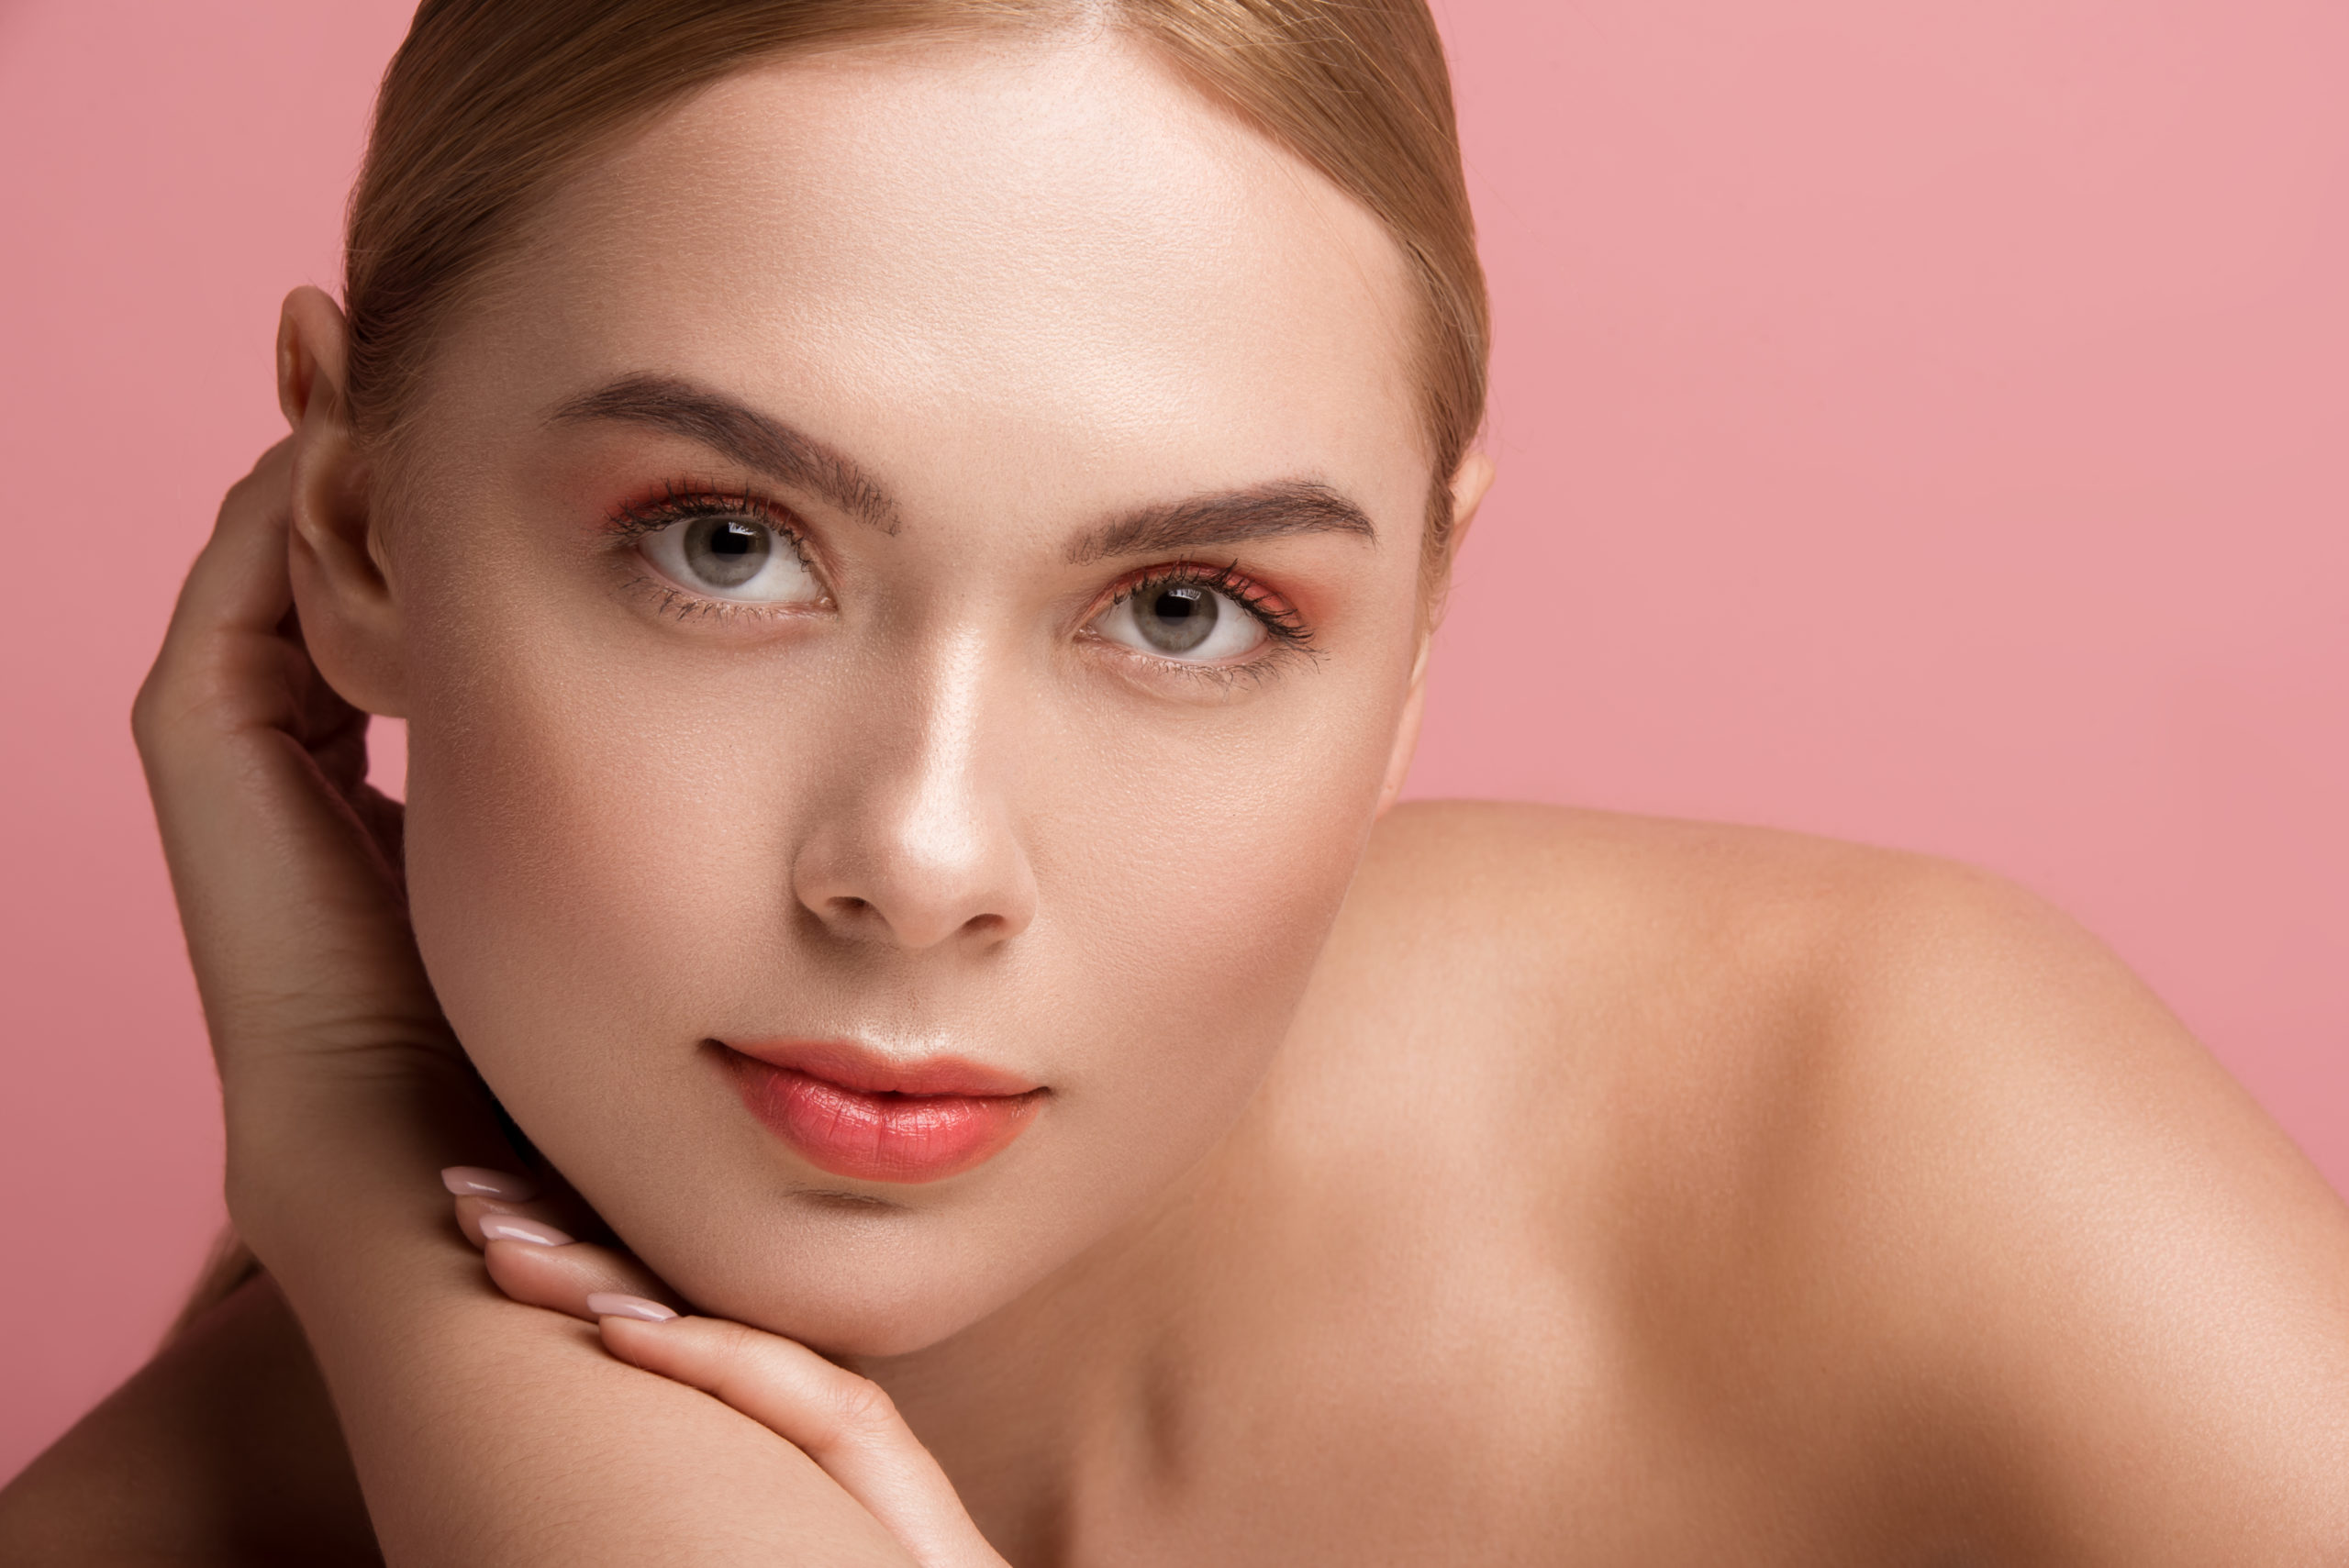 Lady with pure derma.